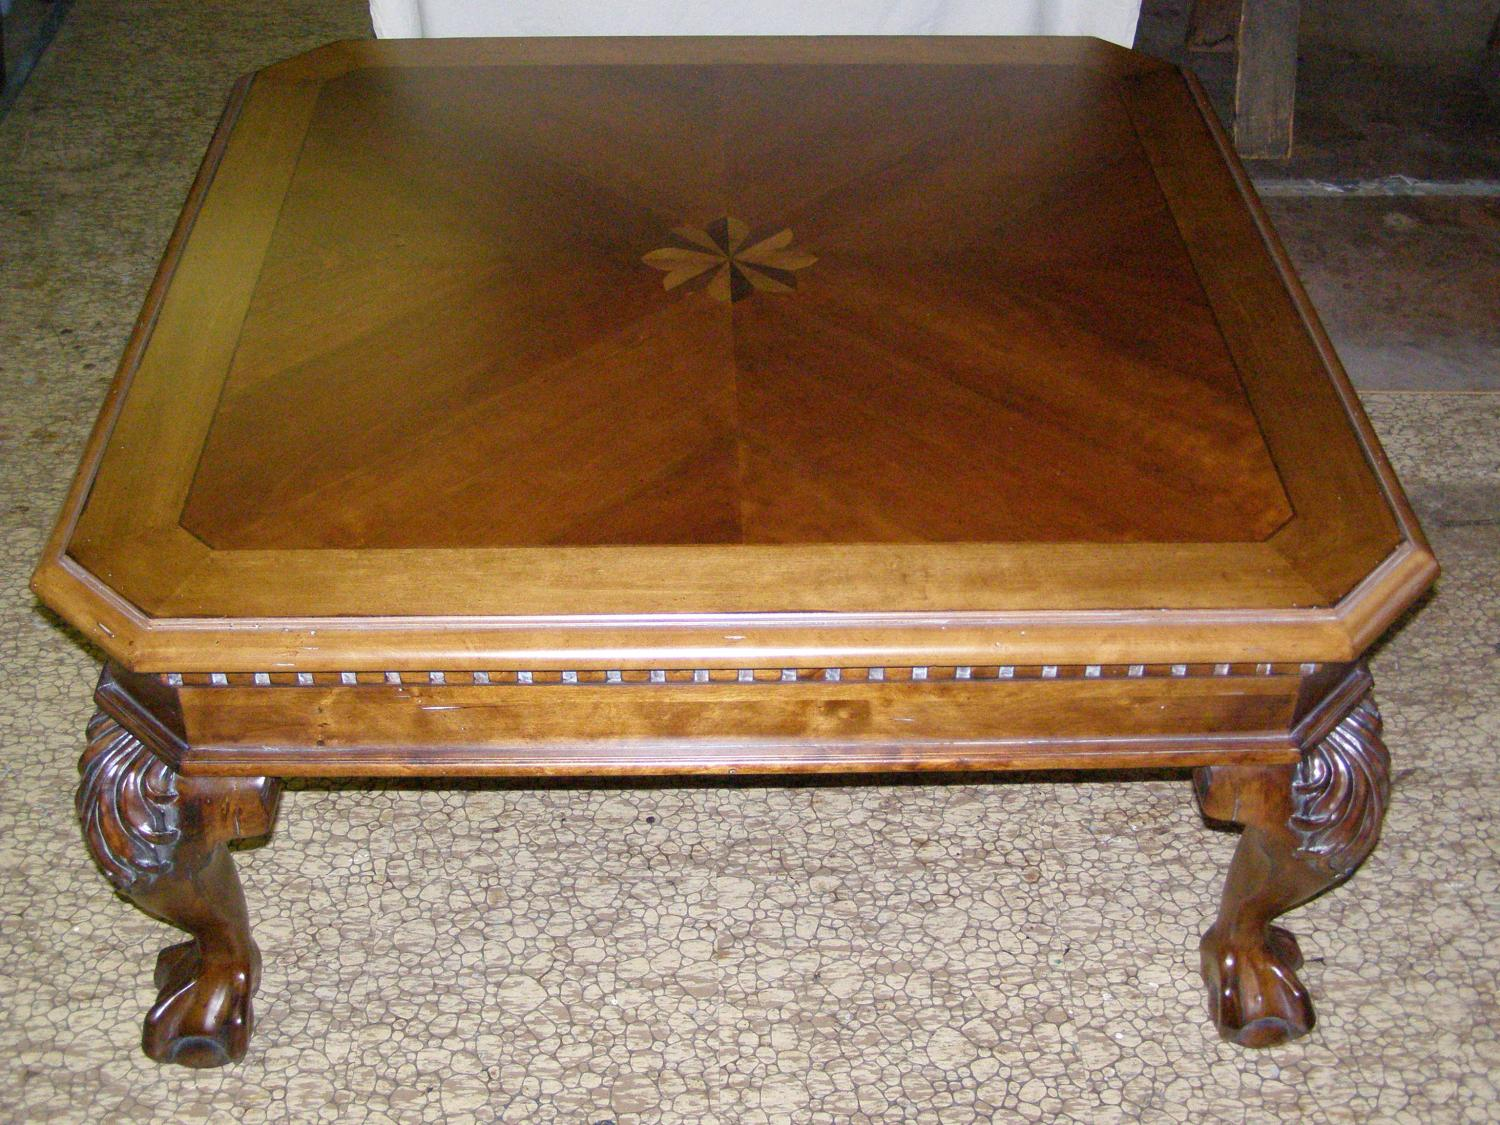 Ralph Colby Amp Son Furniture Refinishing Repair Of Oregon